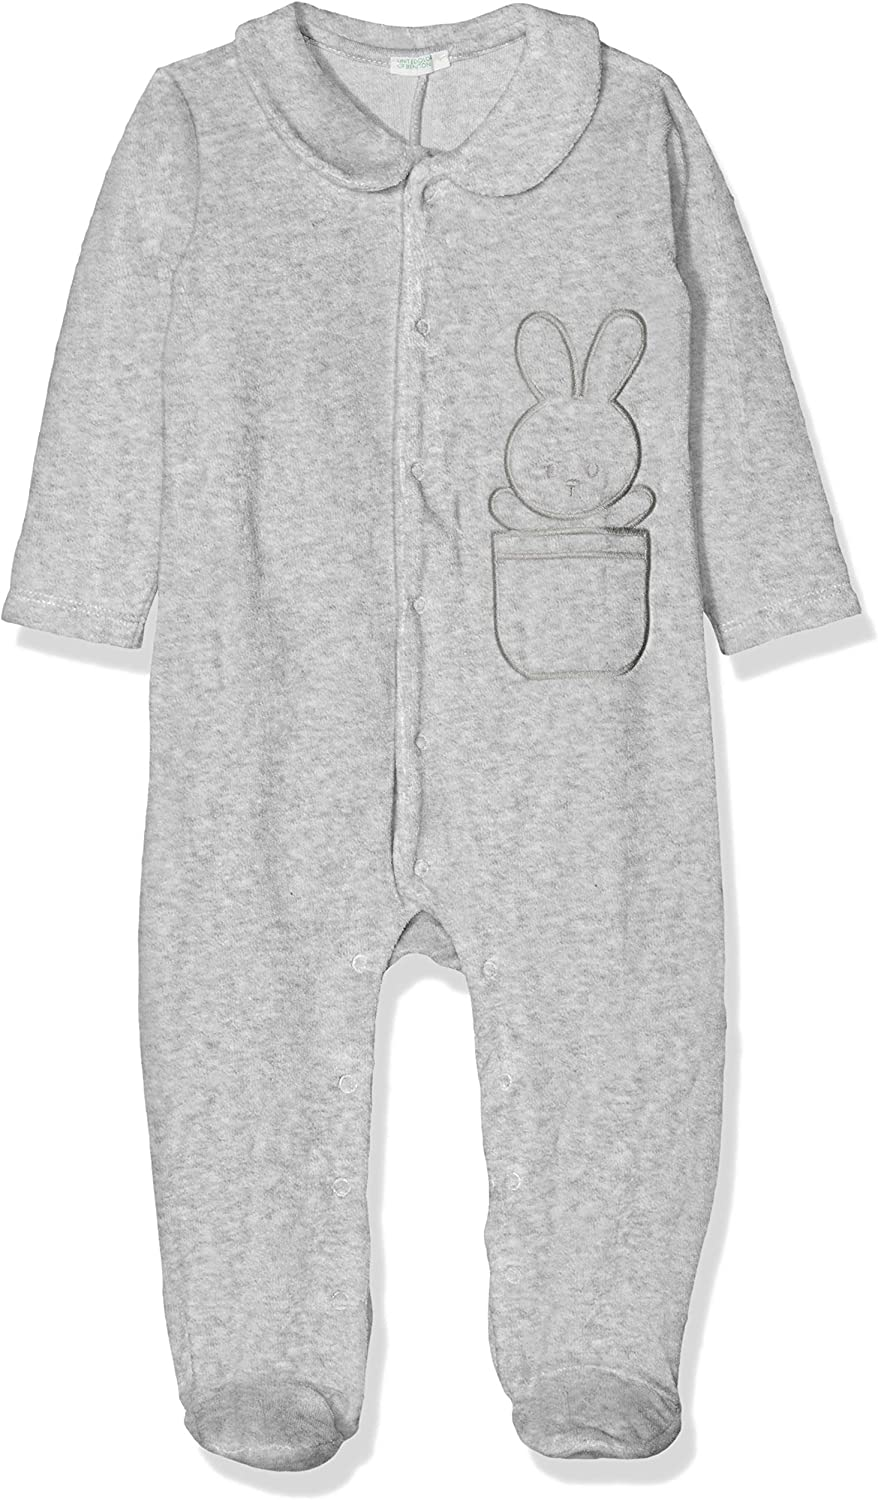 Undercolors of Benetton Baby Boys Playsuit